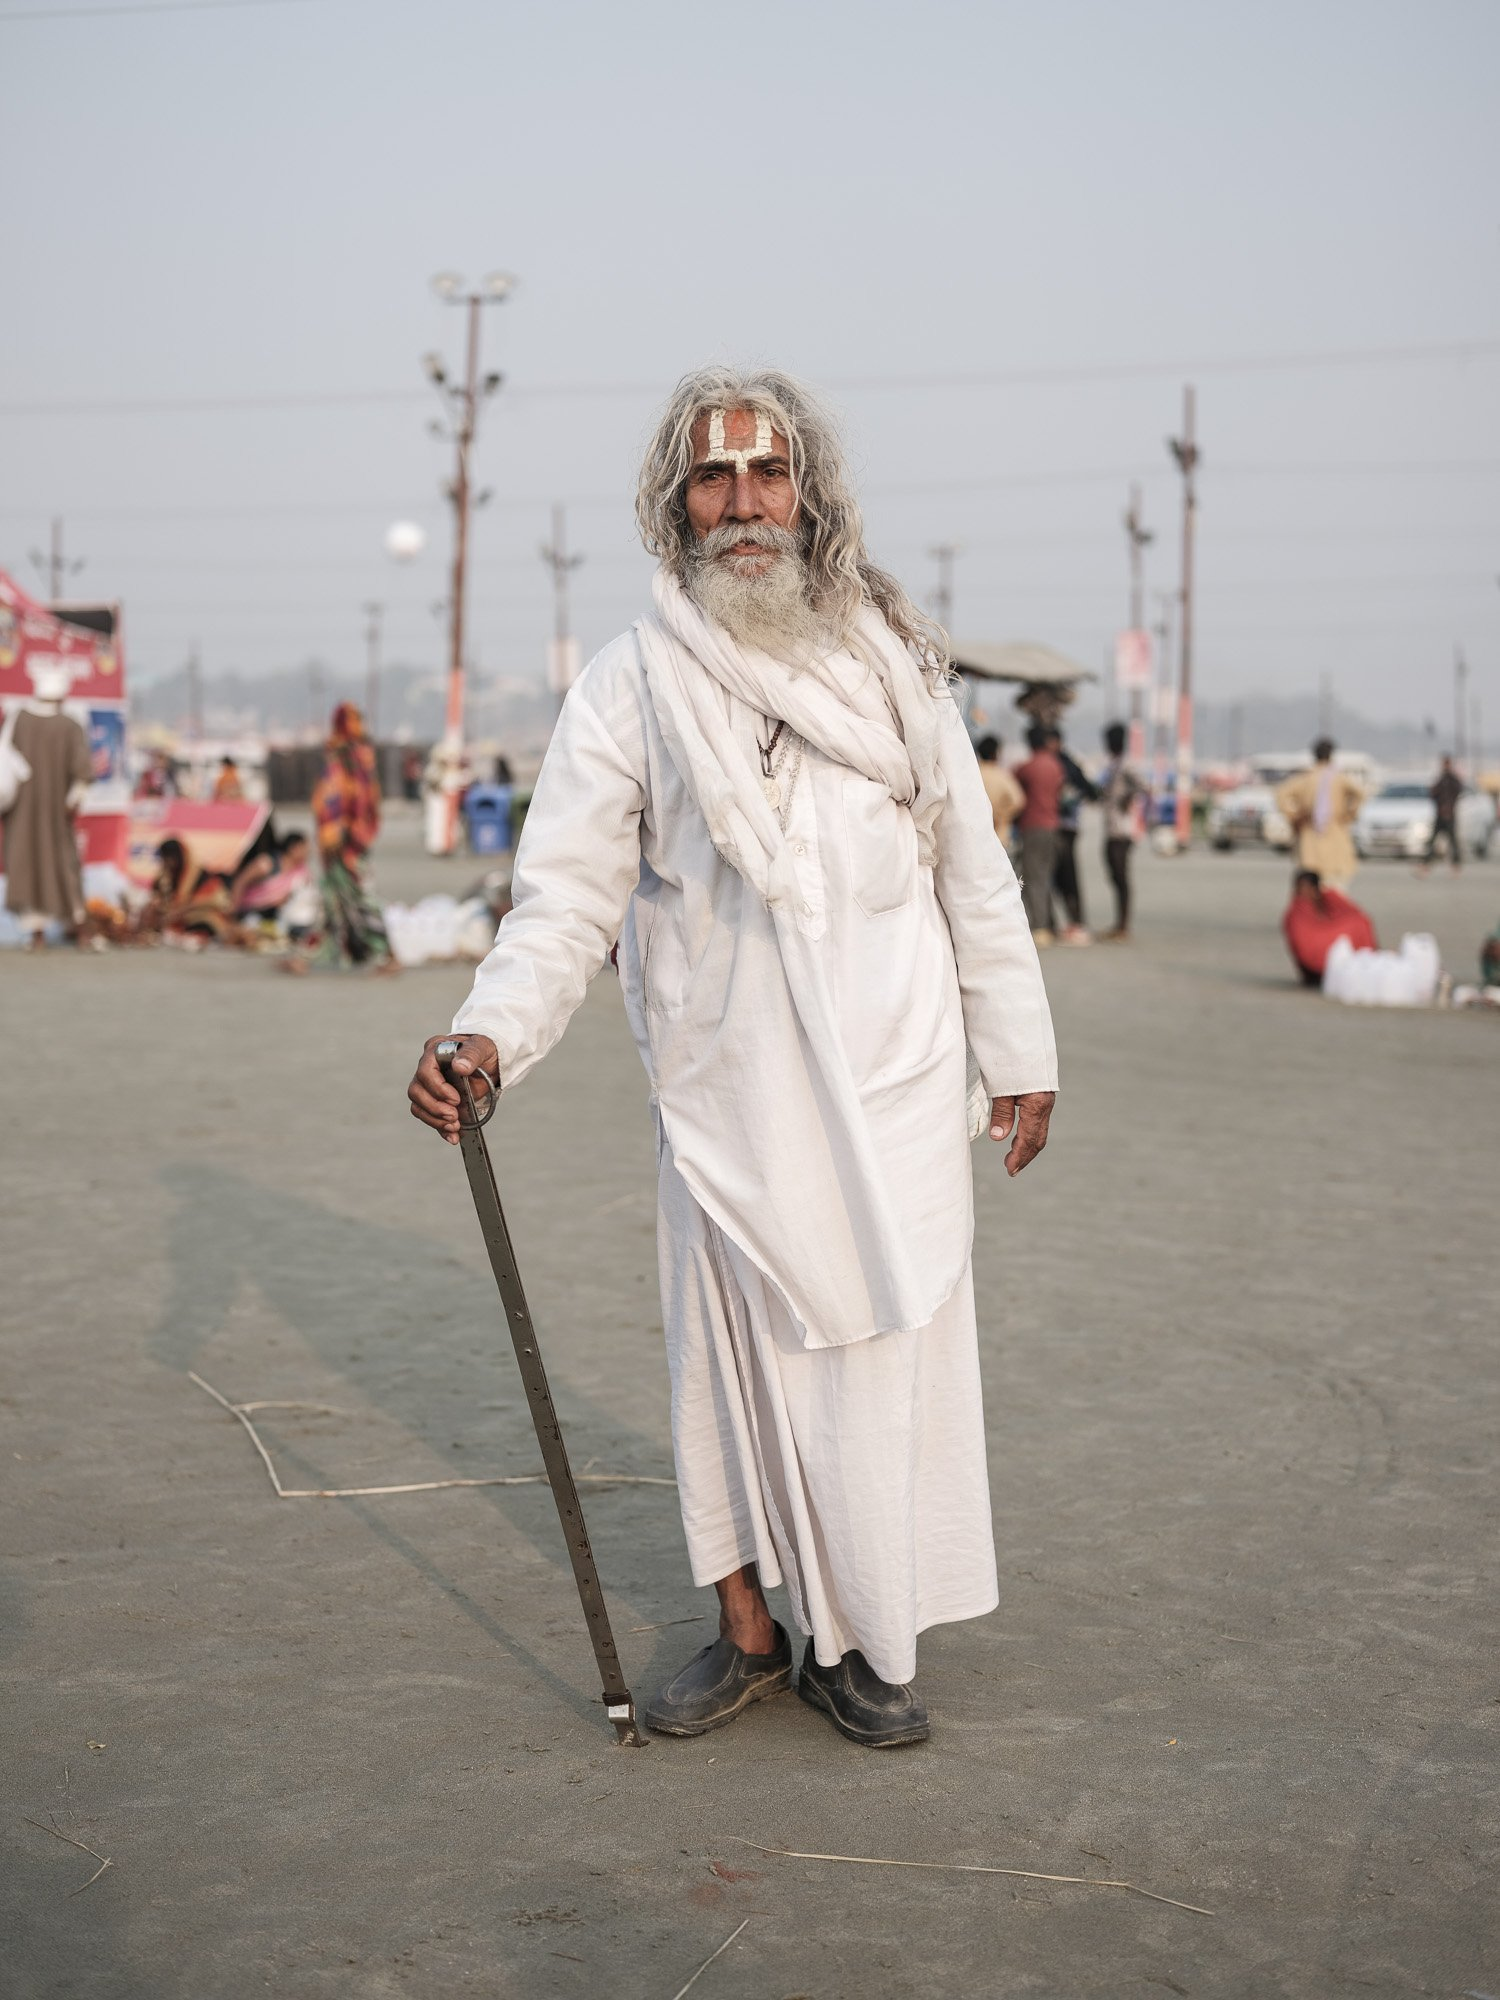 baba white cloth long hair pilgrims Kumbh mela 2019 India Allahabad Prayagraj Ardh hindu religious Festival event rivers photographer jose jeuland photography